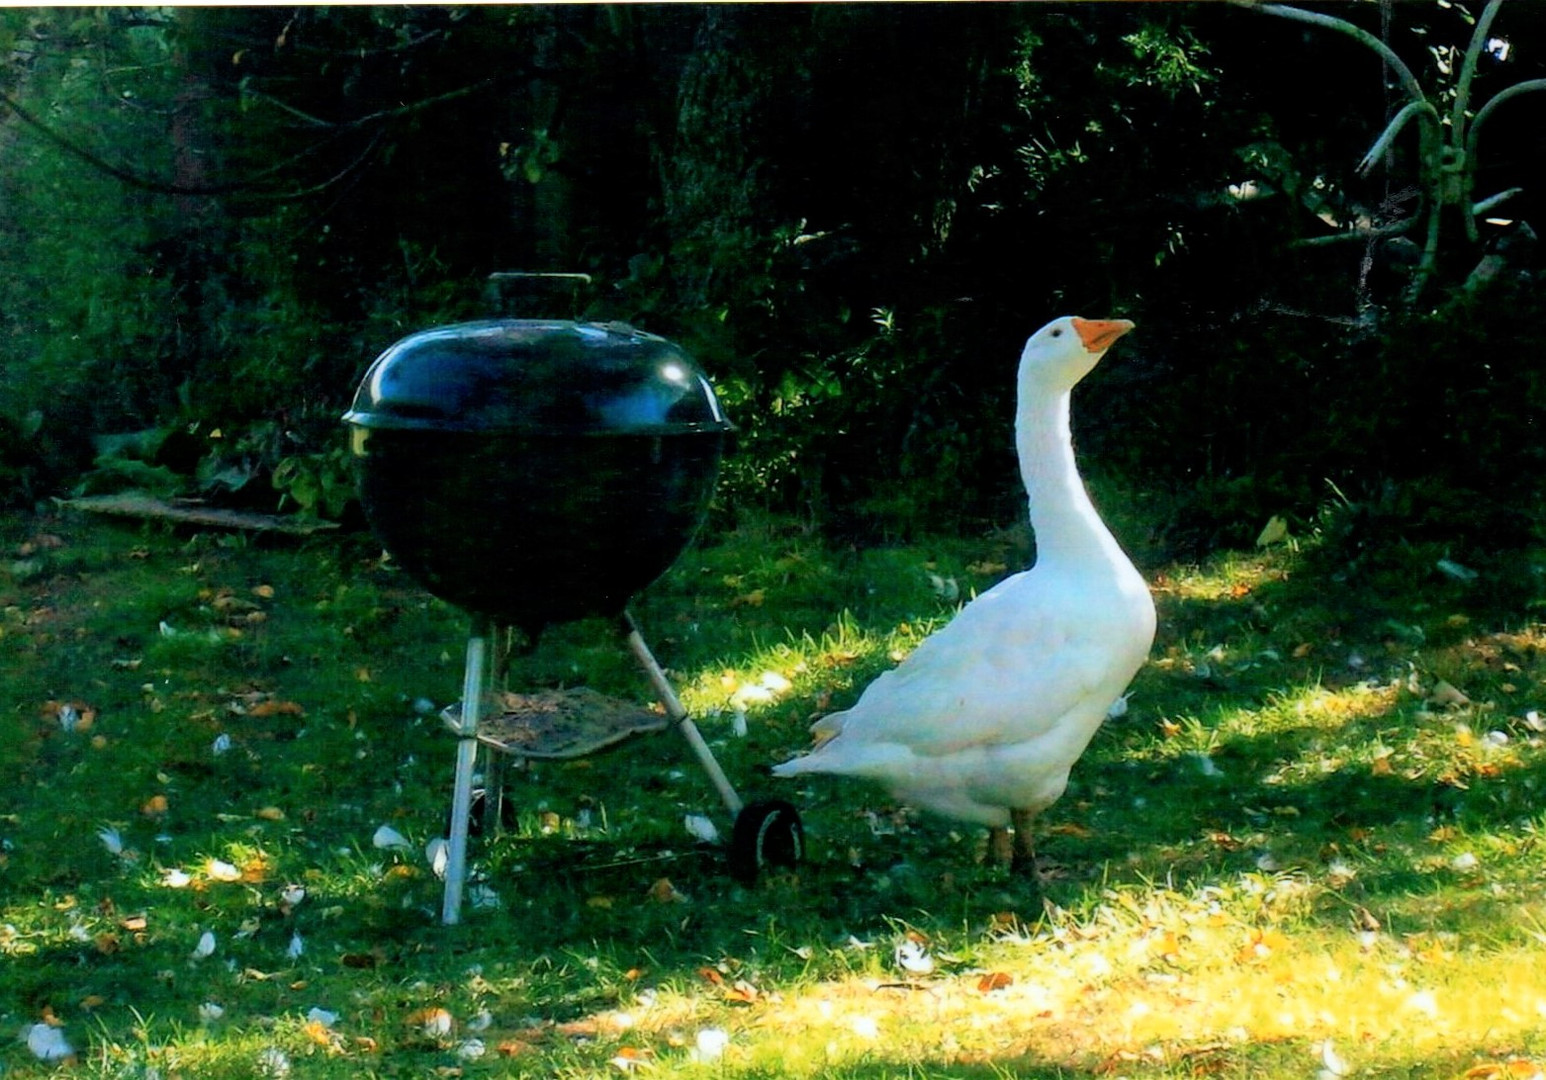 Barbecued goose